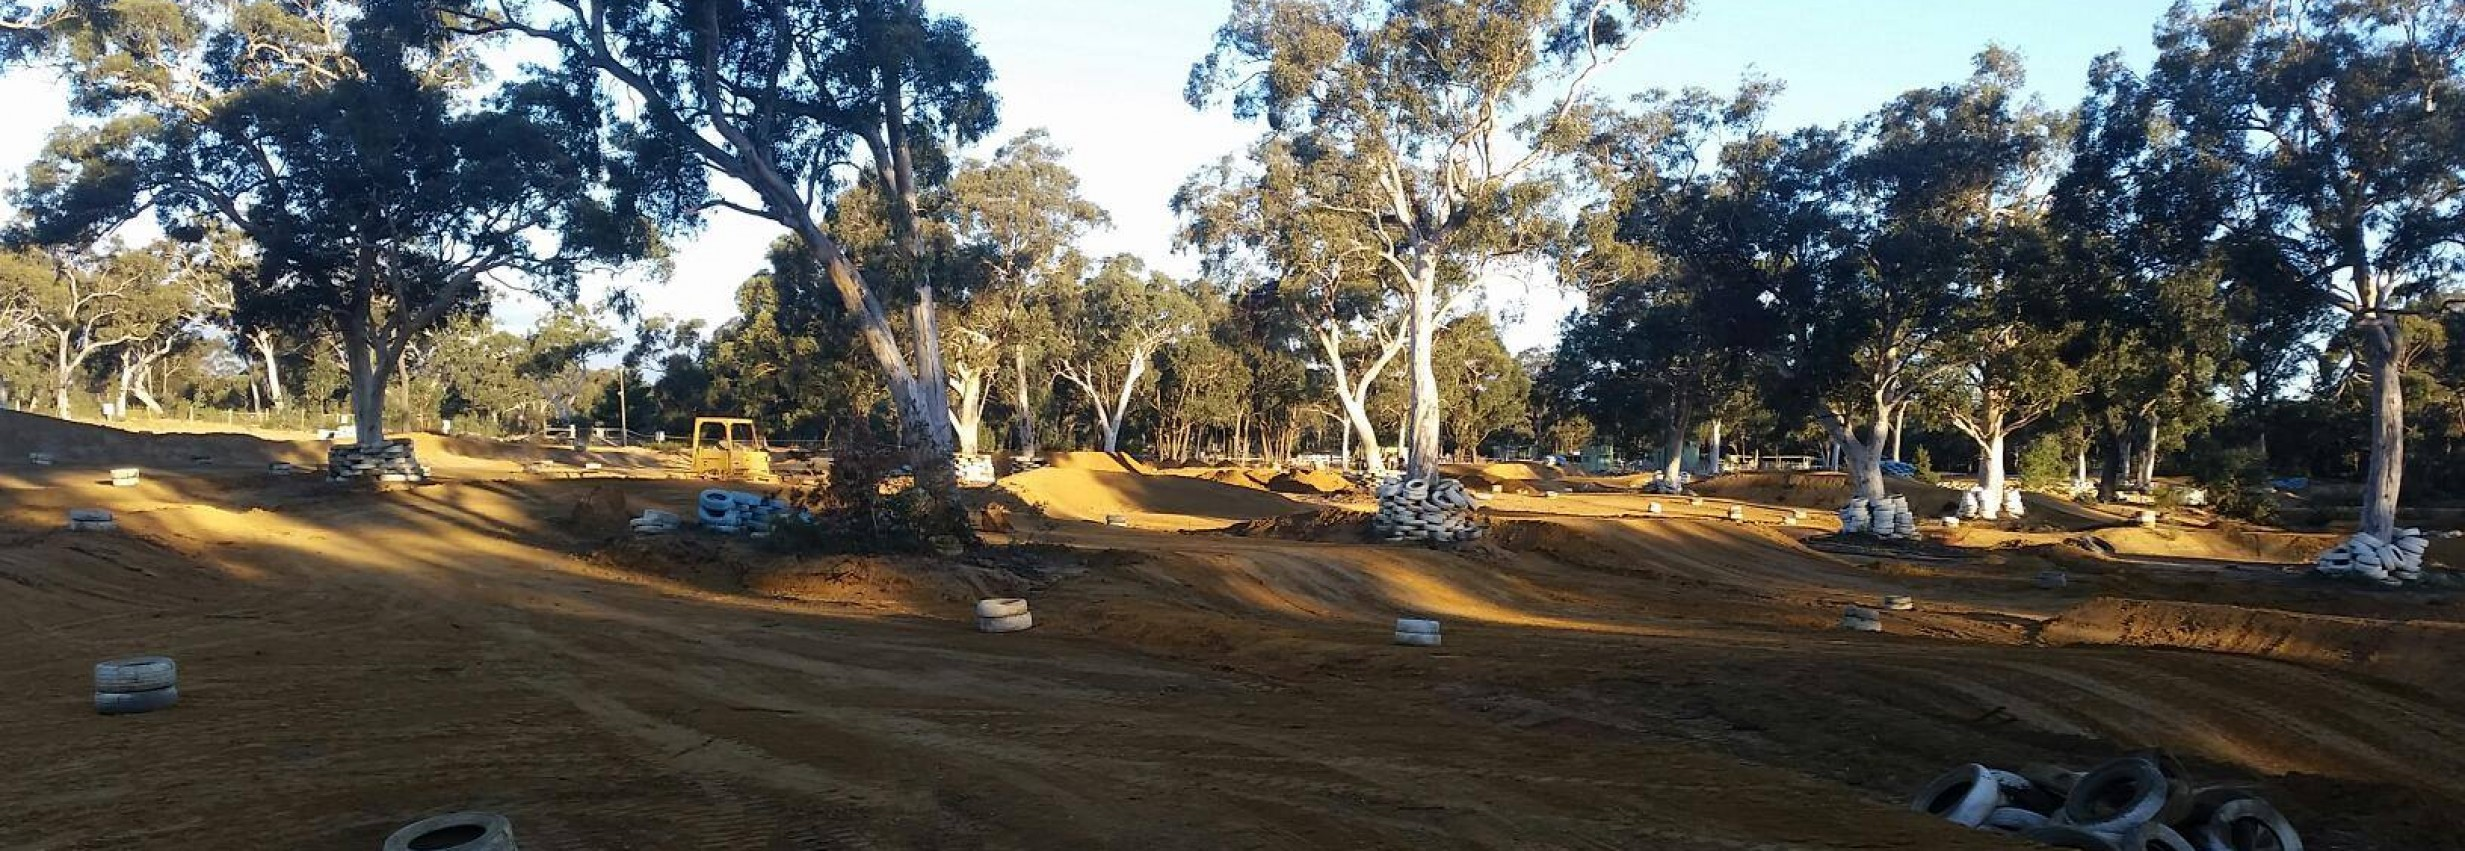 Nowra MotoPlex – Nowra District Motorcycle Club